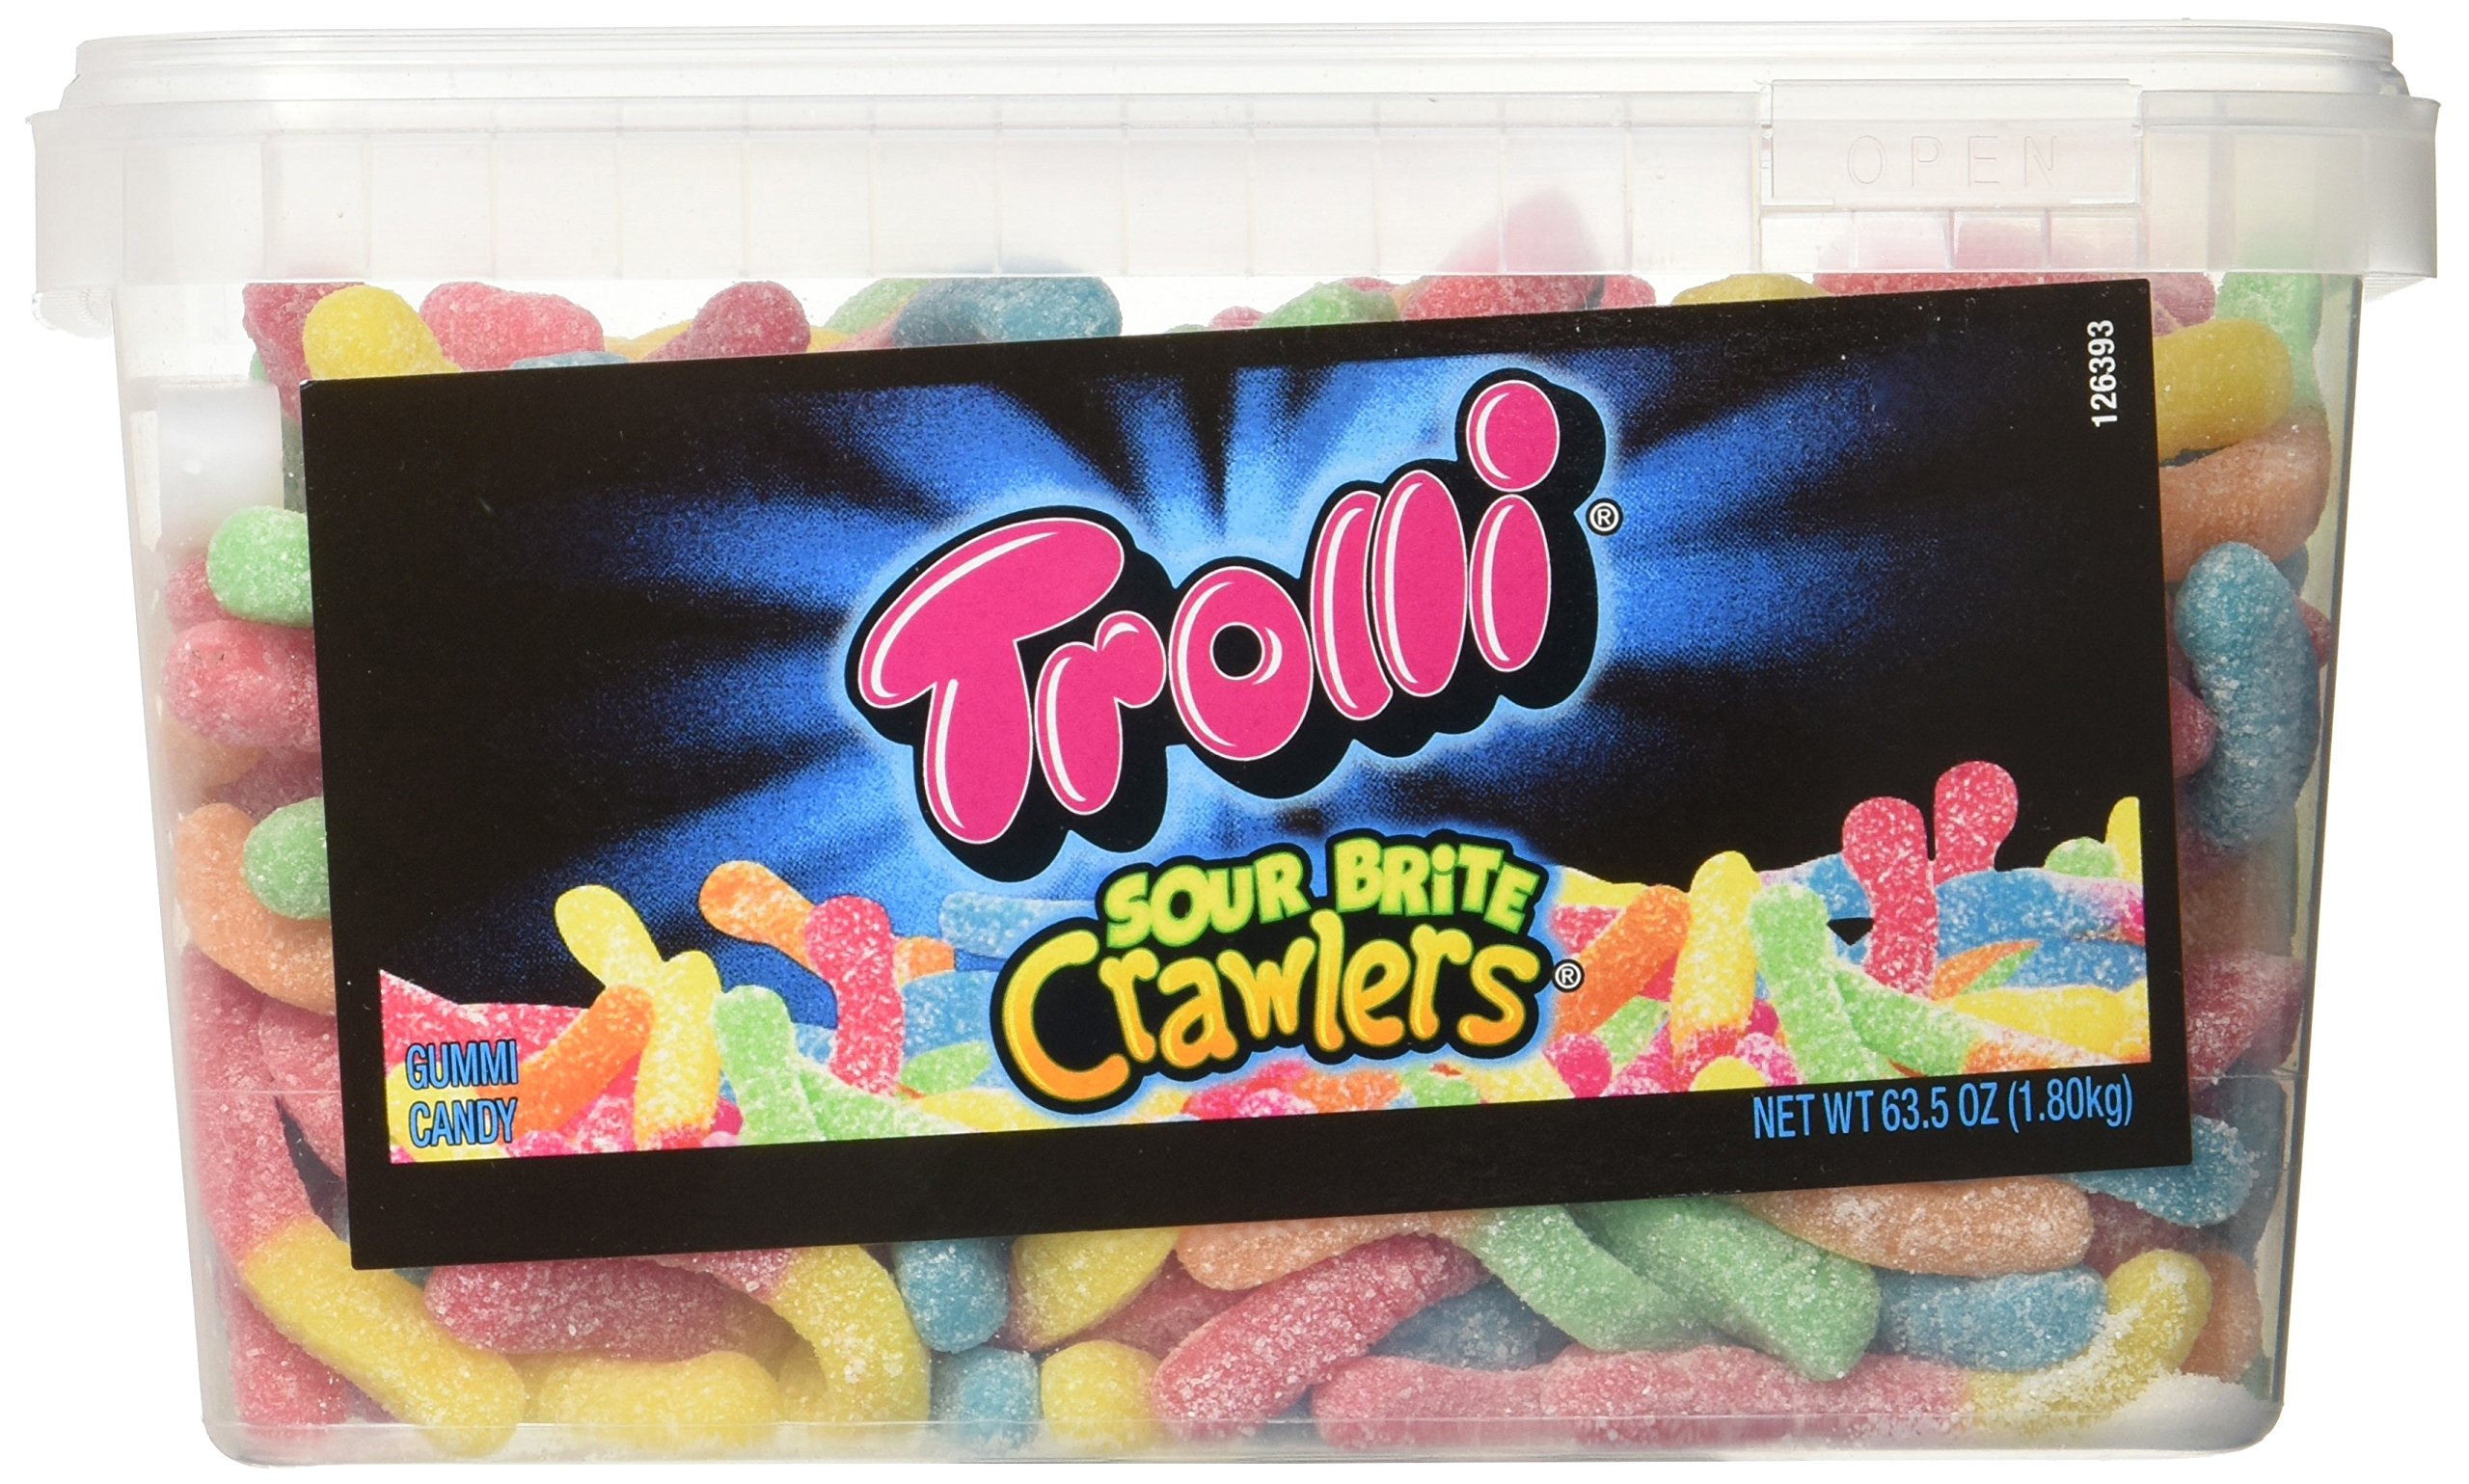 Trolli Sour Brite Crawlers Gummy Worms, 3.96 Pound Tub Sour Gummy Worms